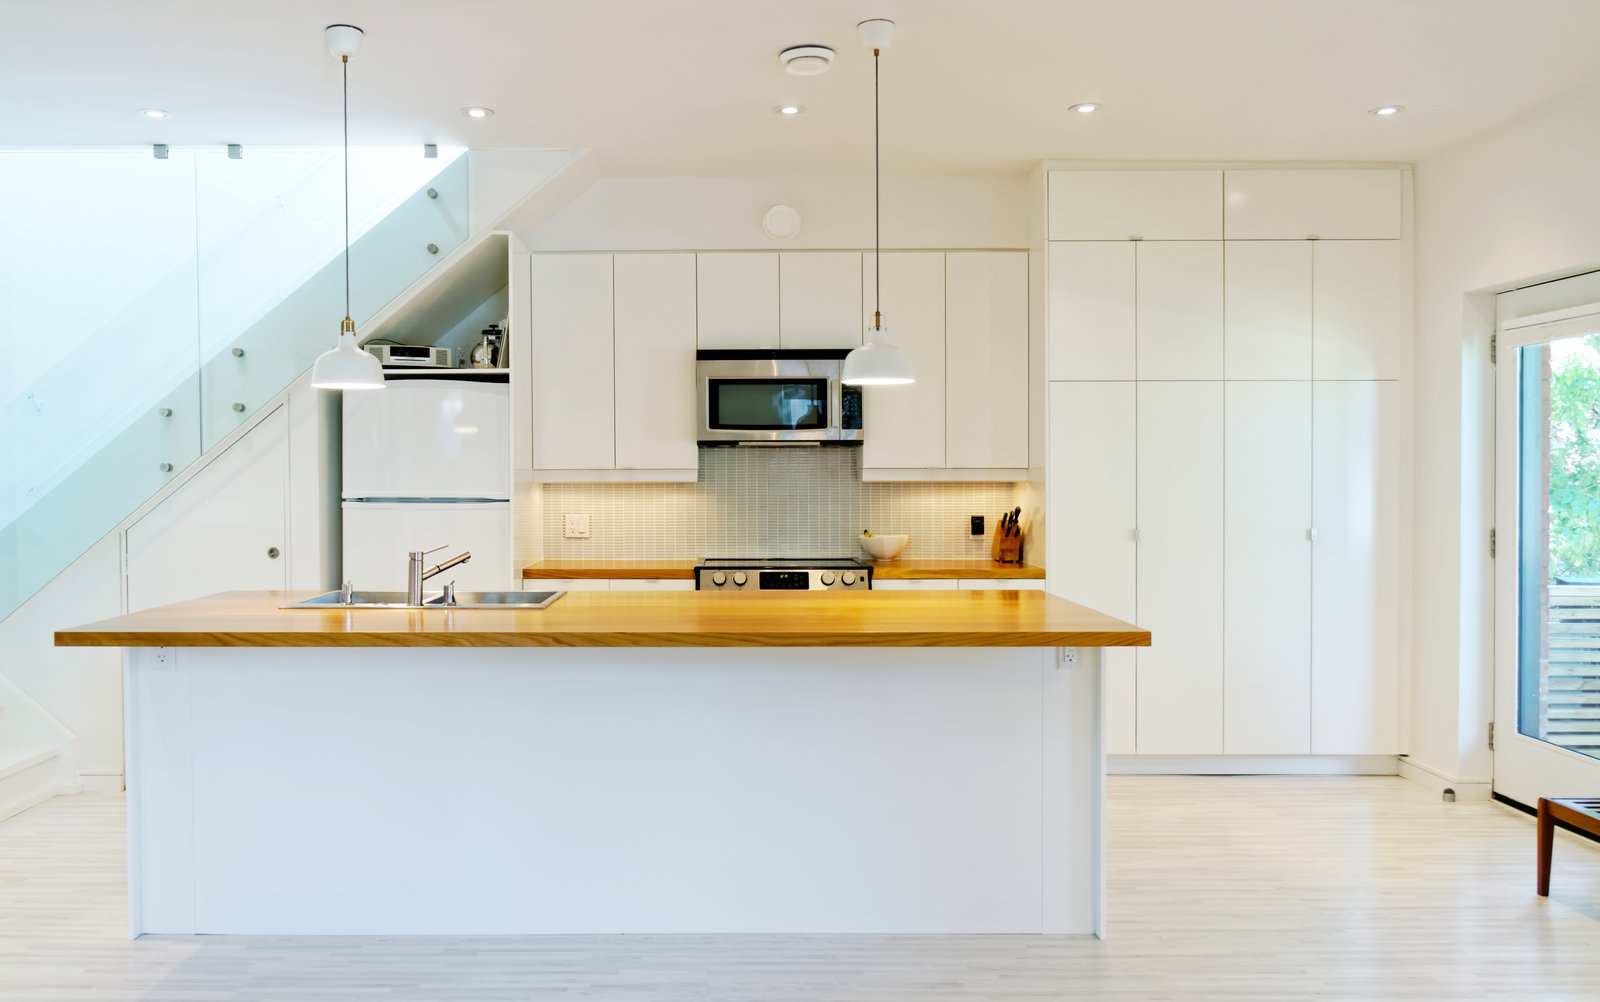 Light Hardwood Floor, Ceiling Lighting, Wood Counter, White Cabinet, Pendant Lighting, Drop In Sink, Microwave, Dishwasher, Staircase, and Glass Railing Our House - Kitchen  Our House by Solares Architecture